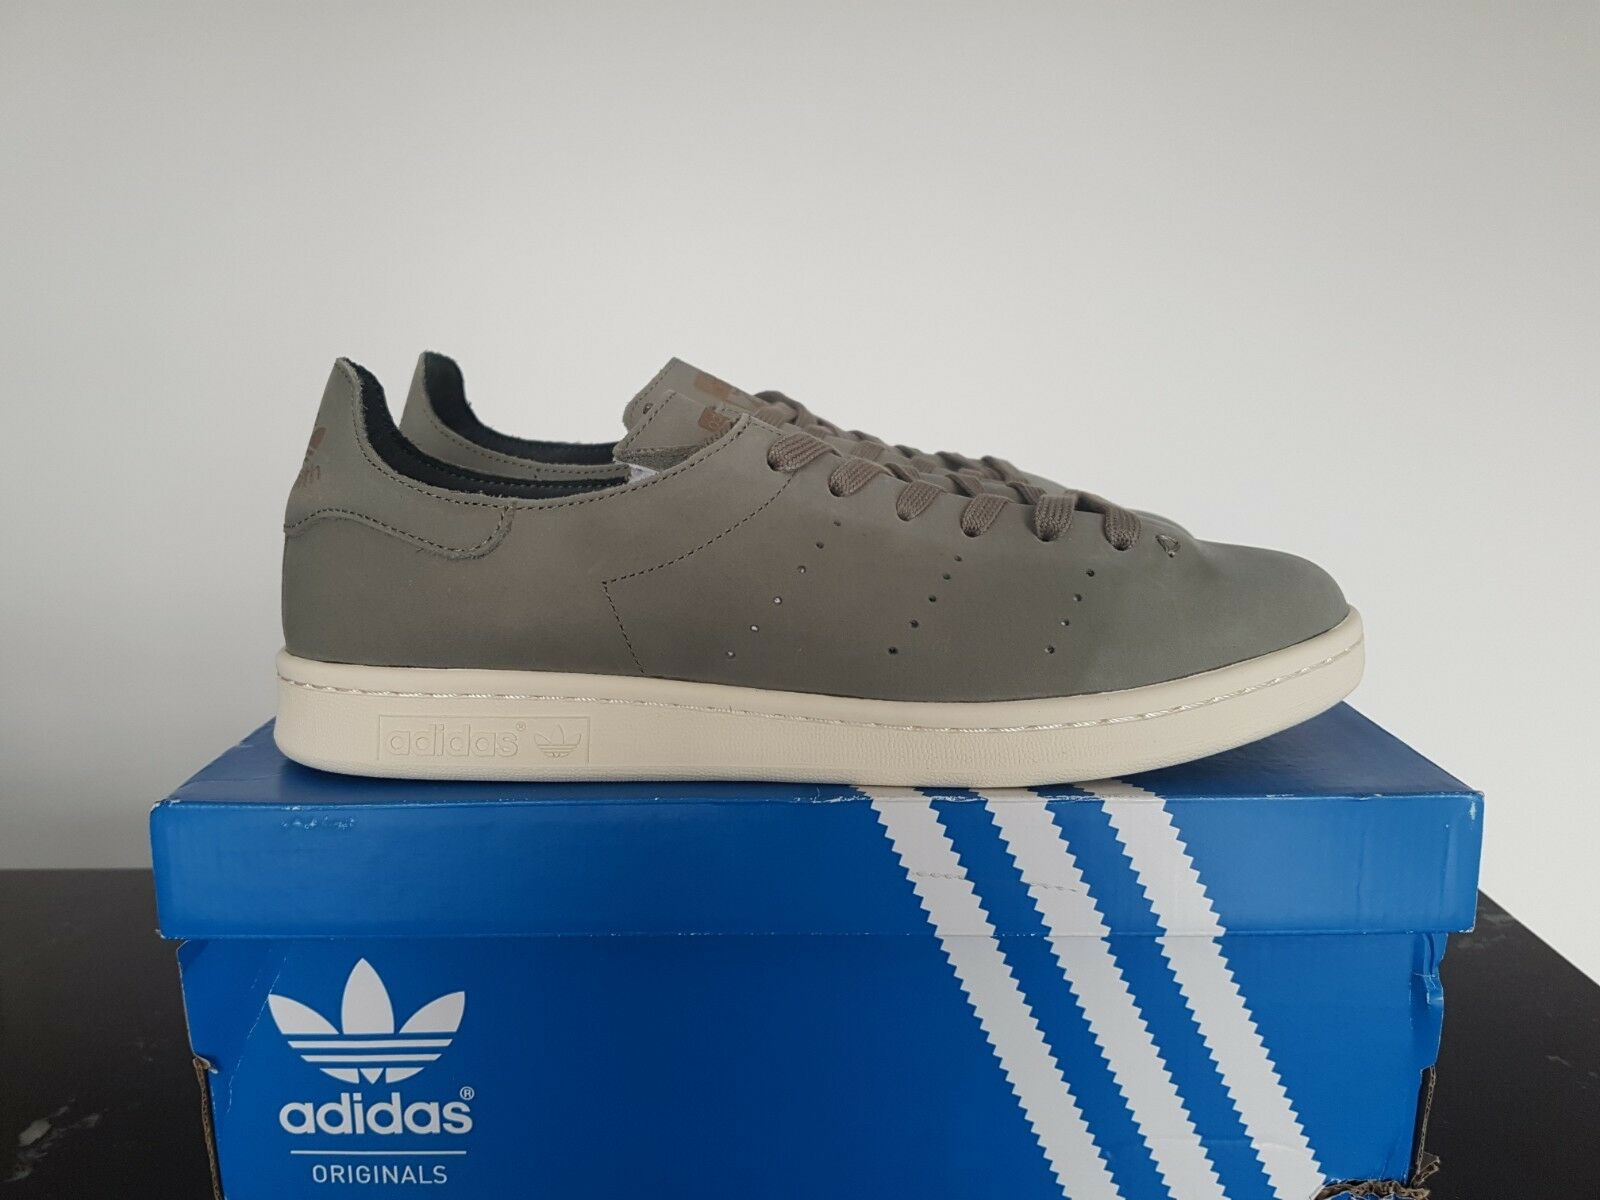 NEW IN THE BOX ADIDAS STAN SMITH LEA SOCK BB0007 TRACAR TRACAR SHOES FOR MEN